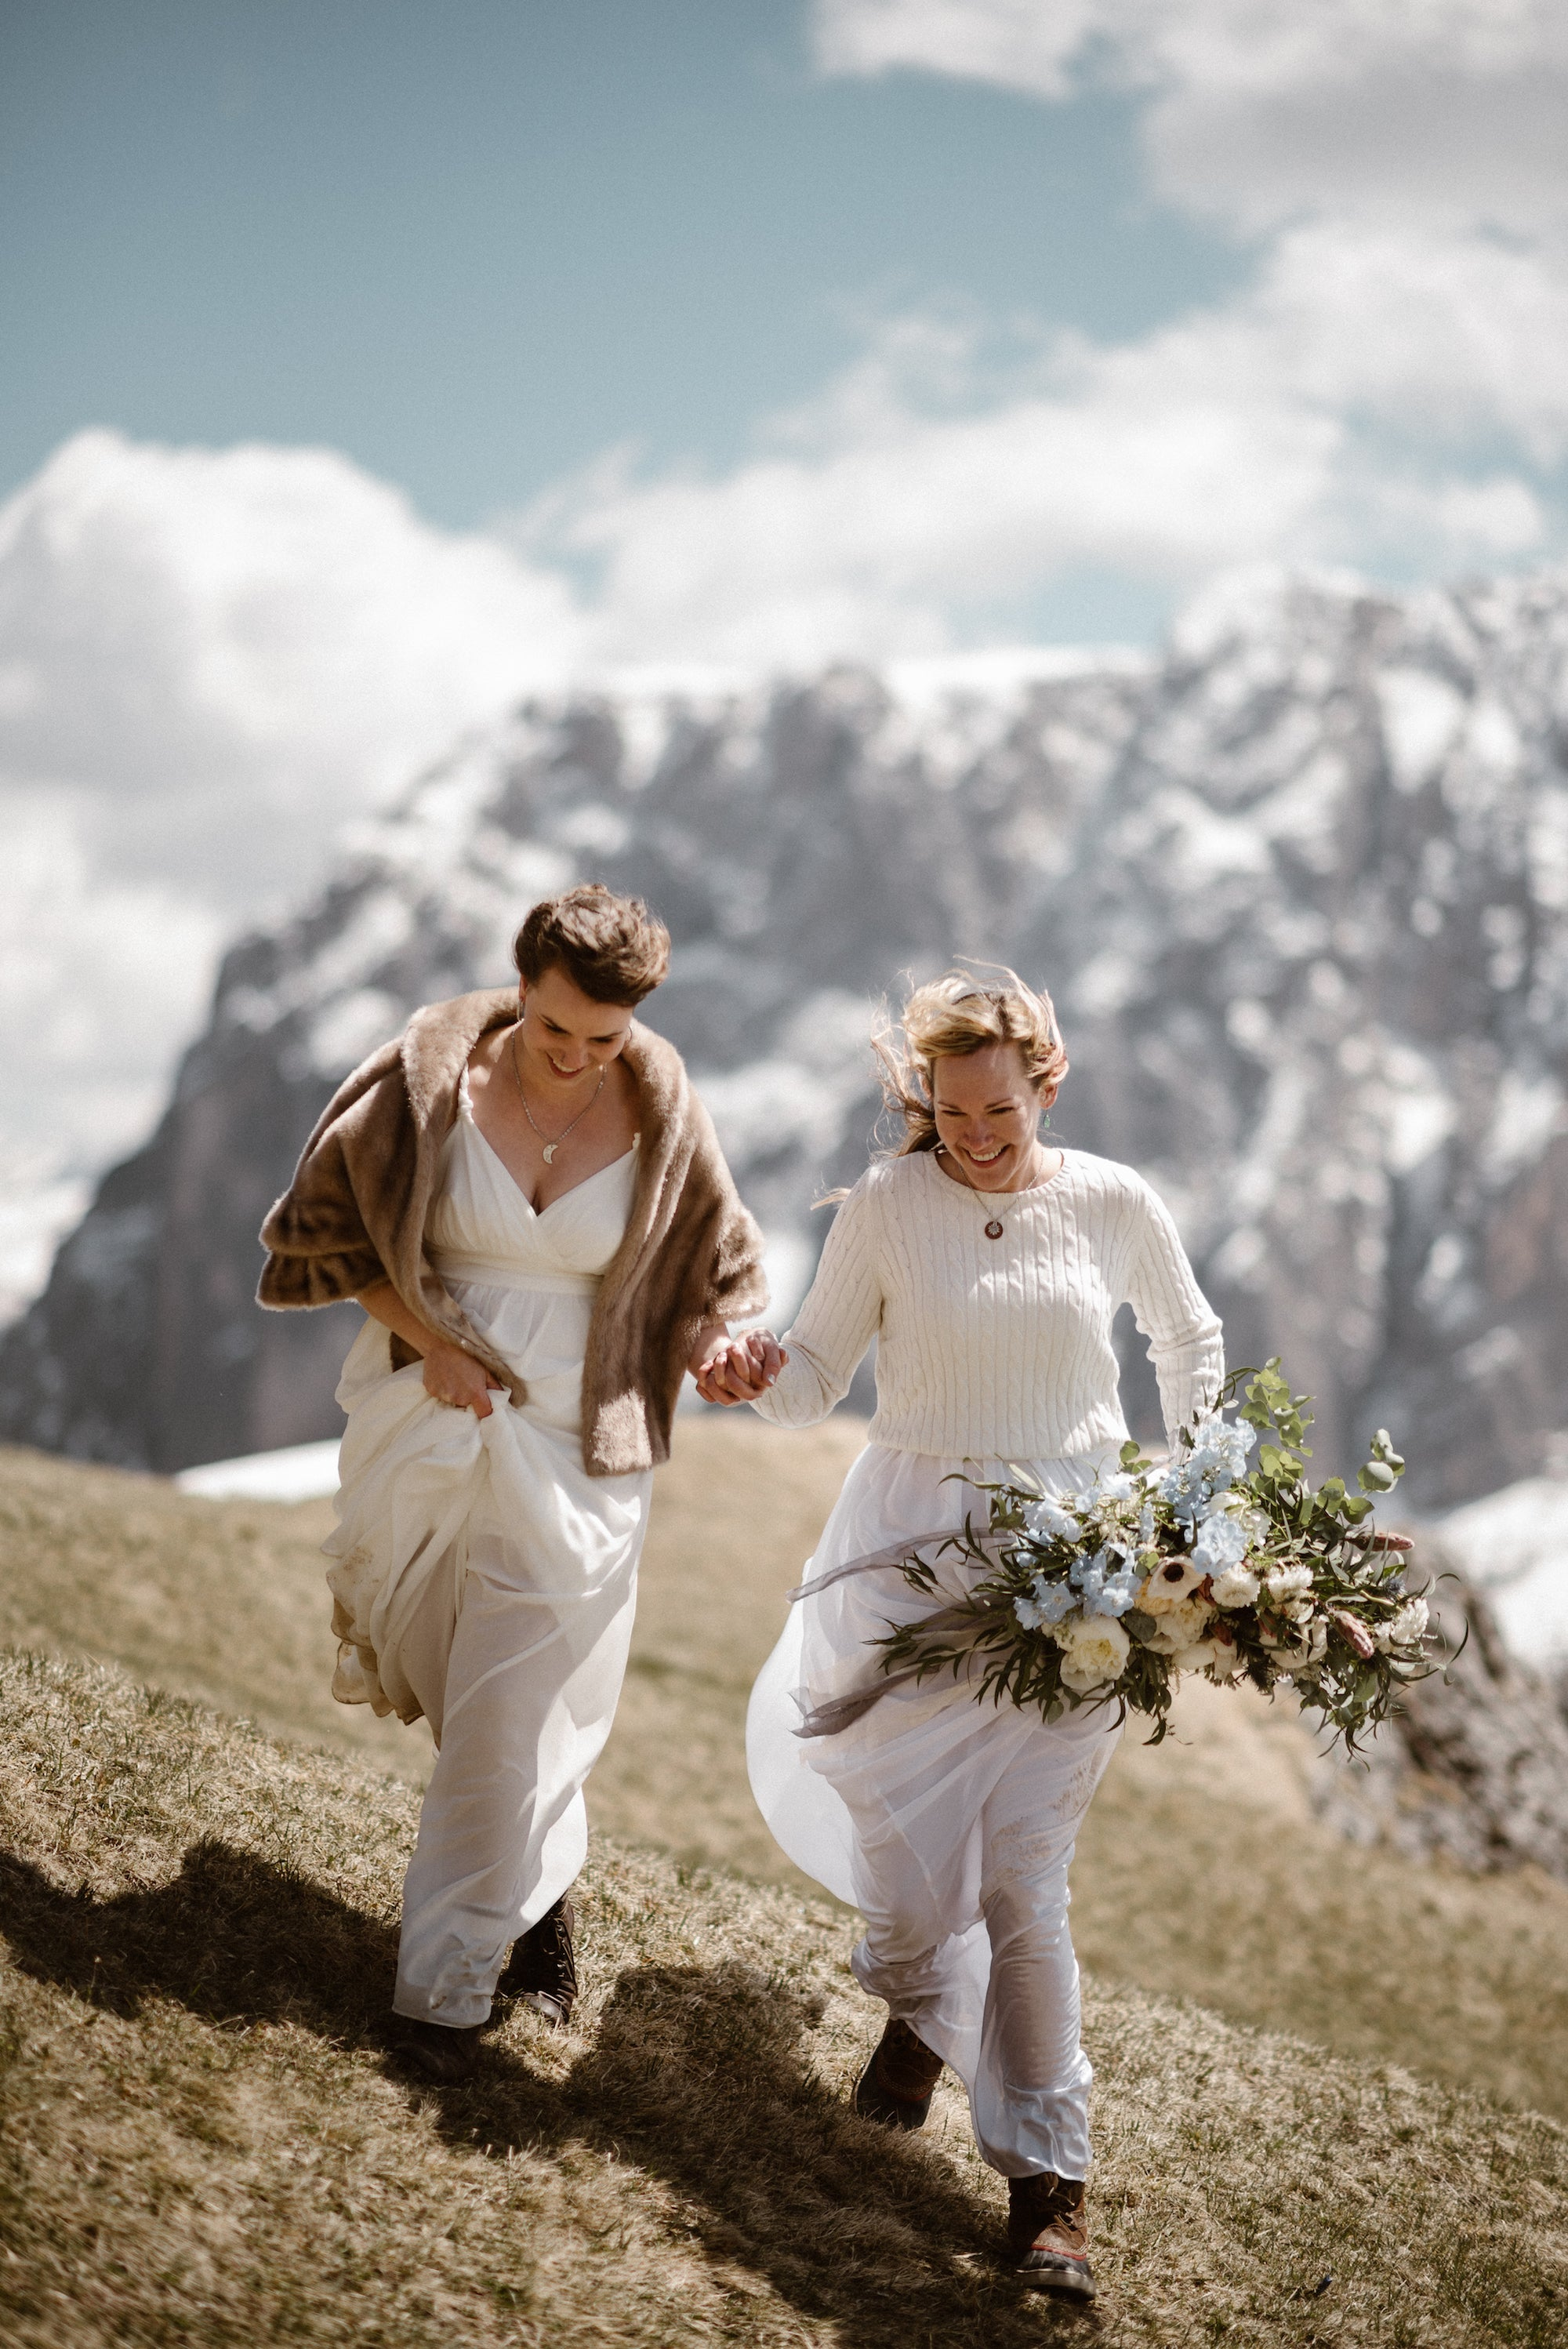 Brides eloping to alpine mountain